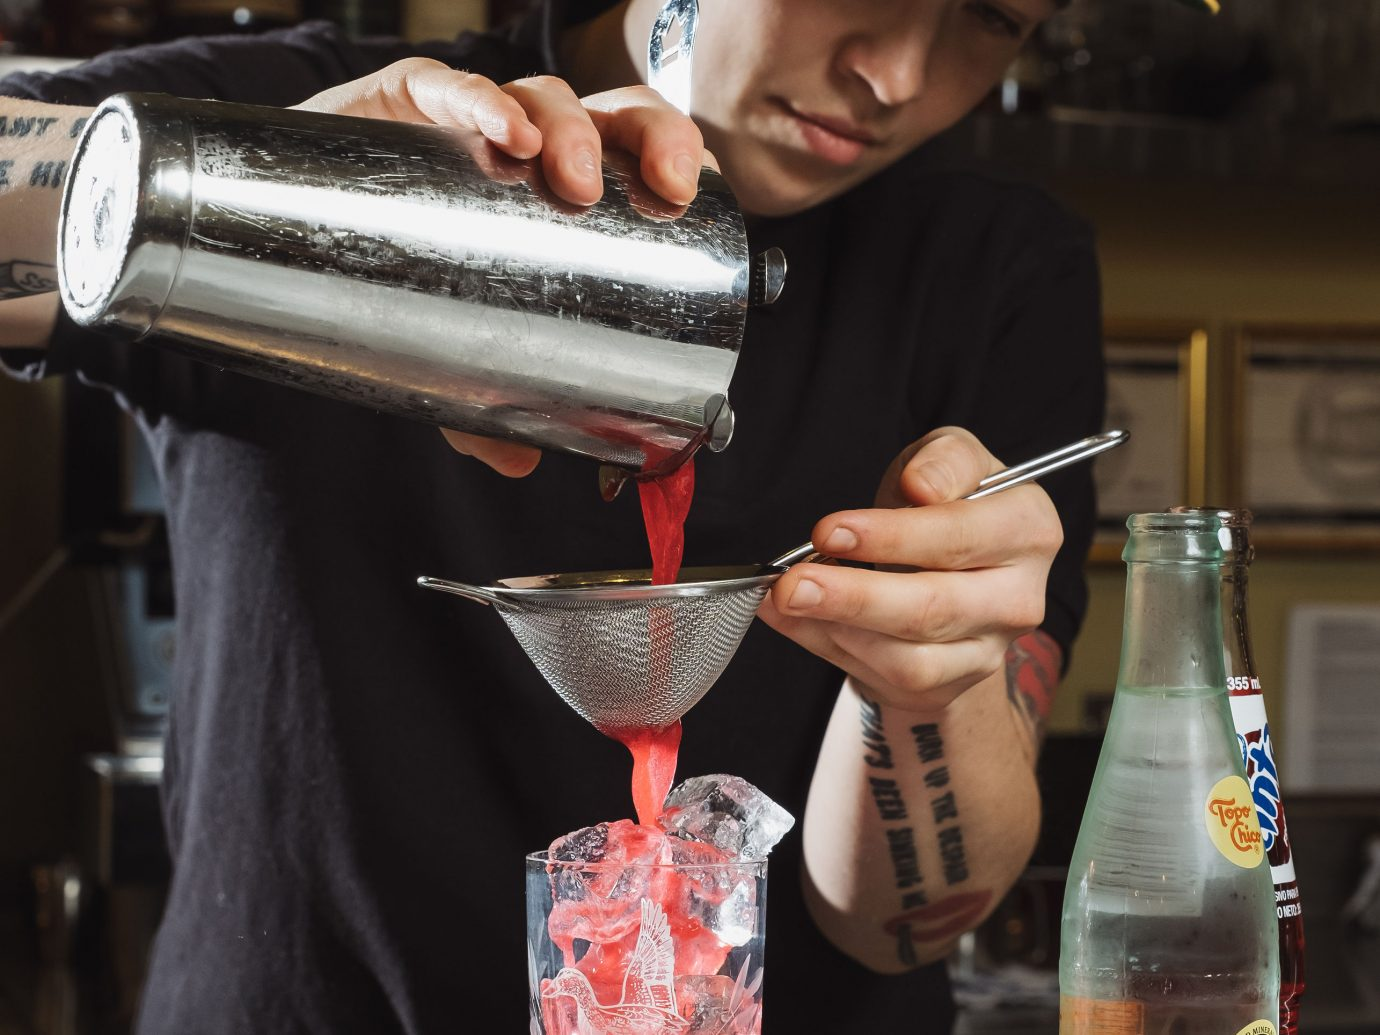 person with tattoos straining a drink